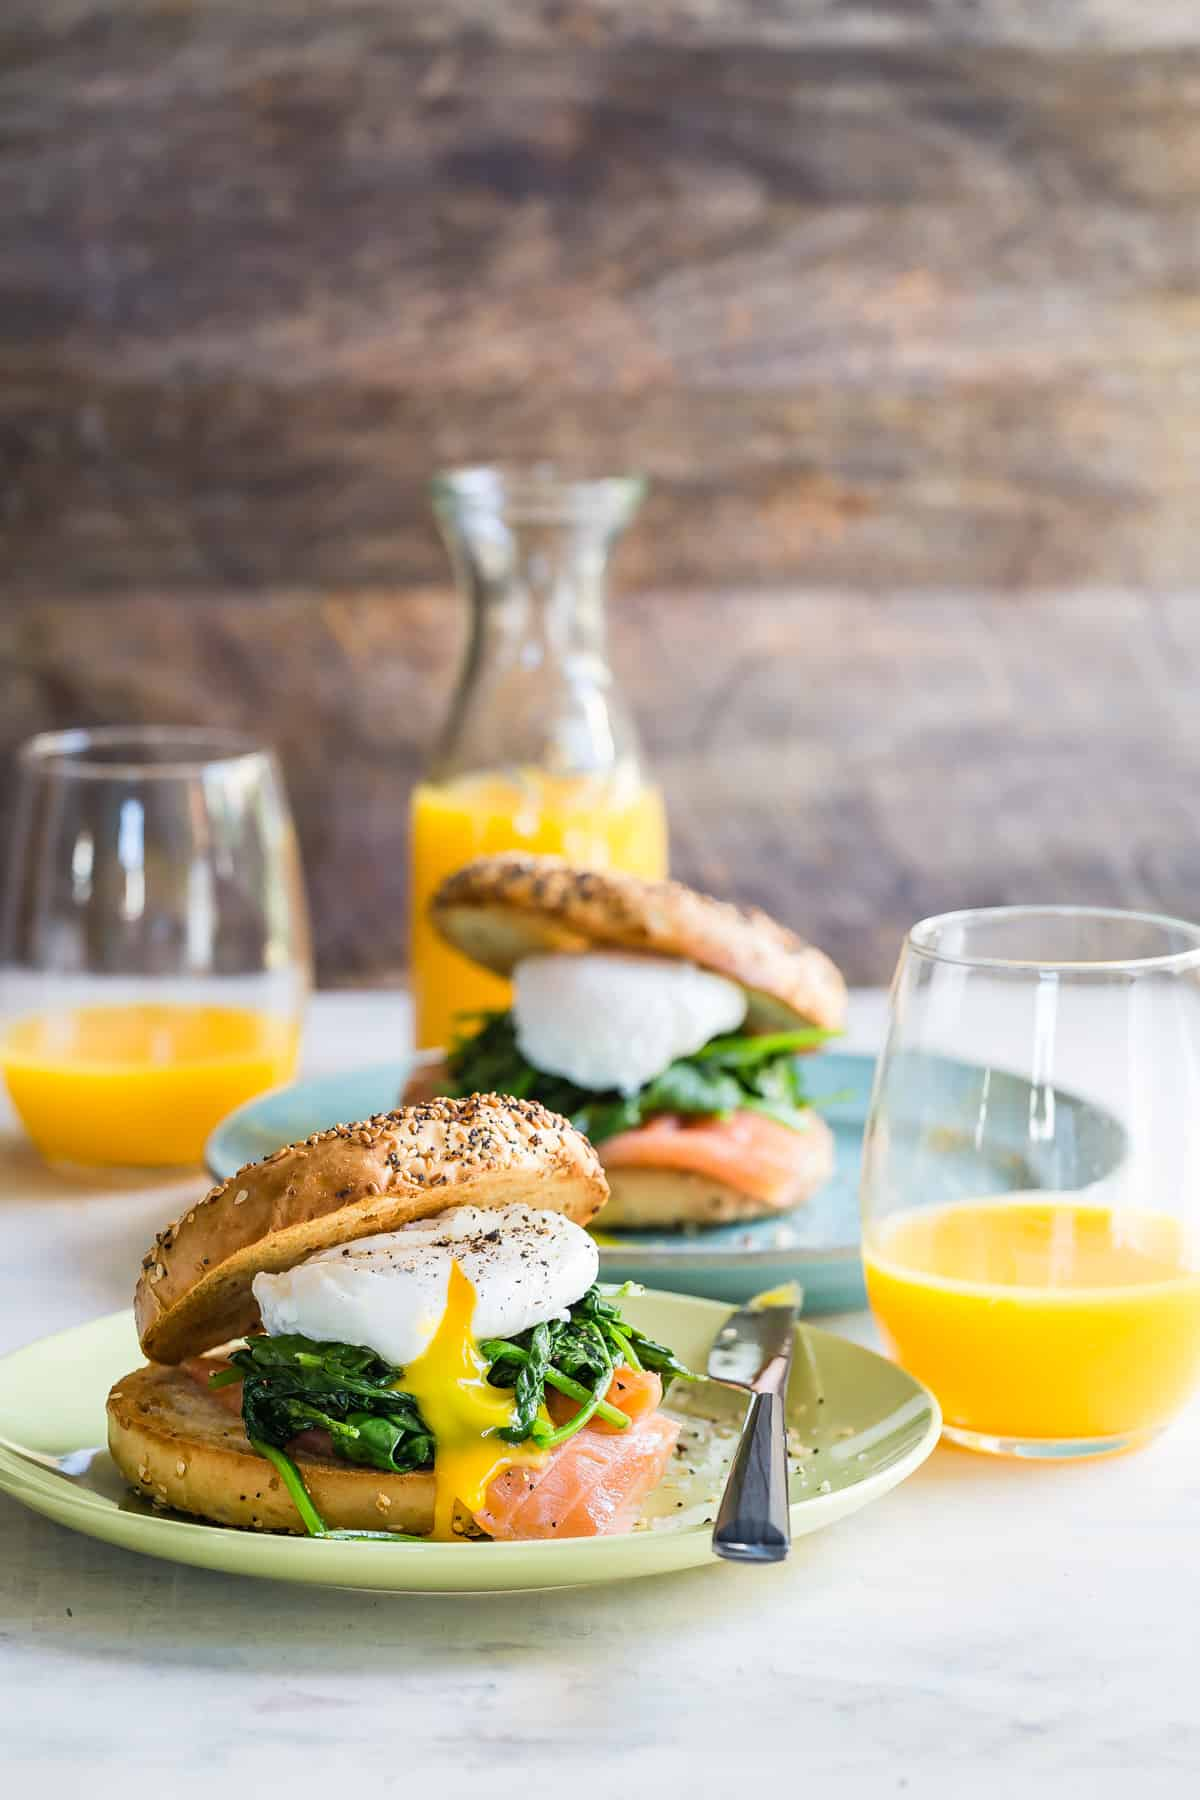 Amazing Eggs Florentine bagel with spinach, salmon and egg.